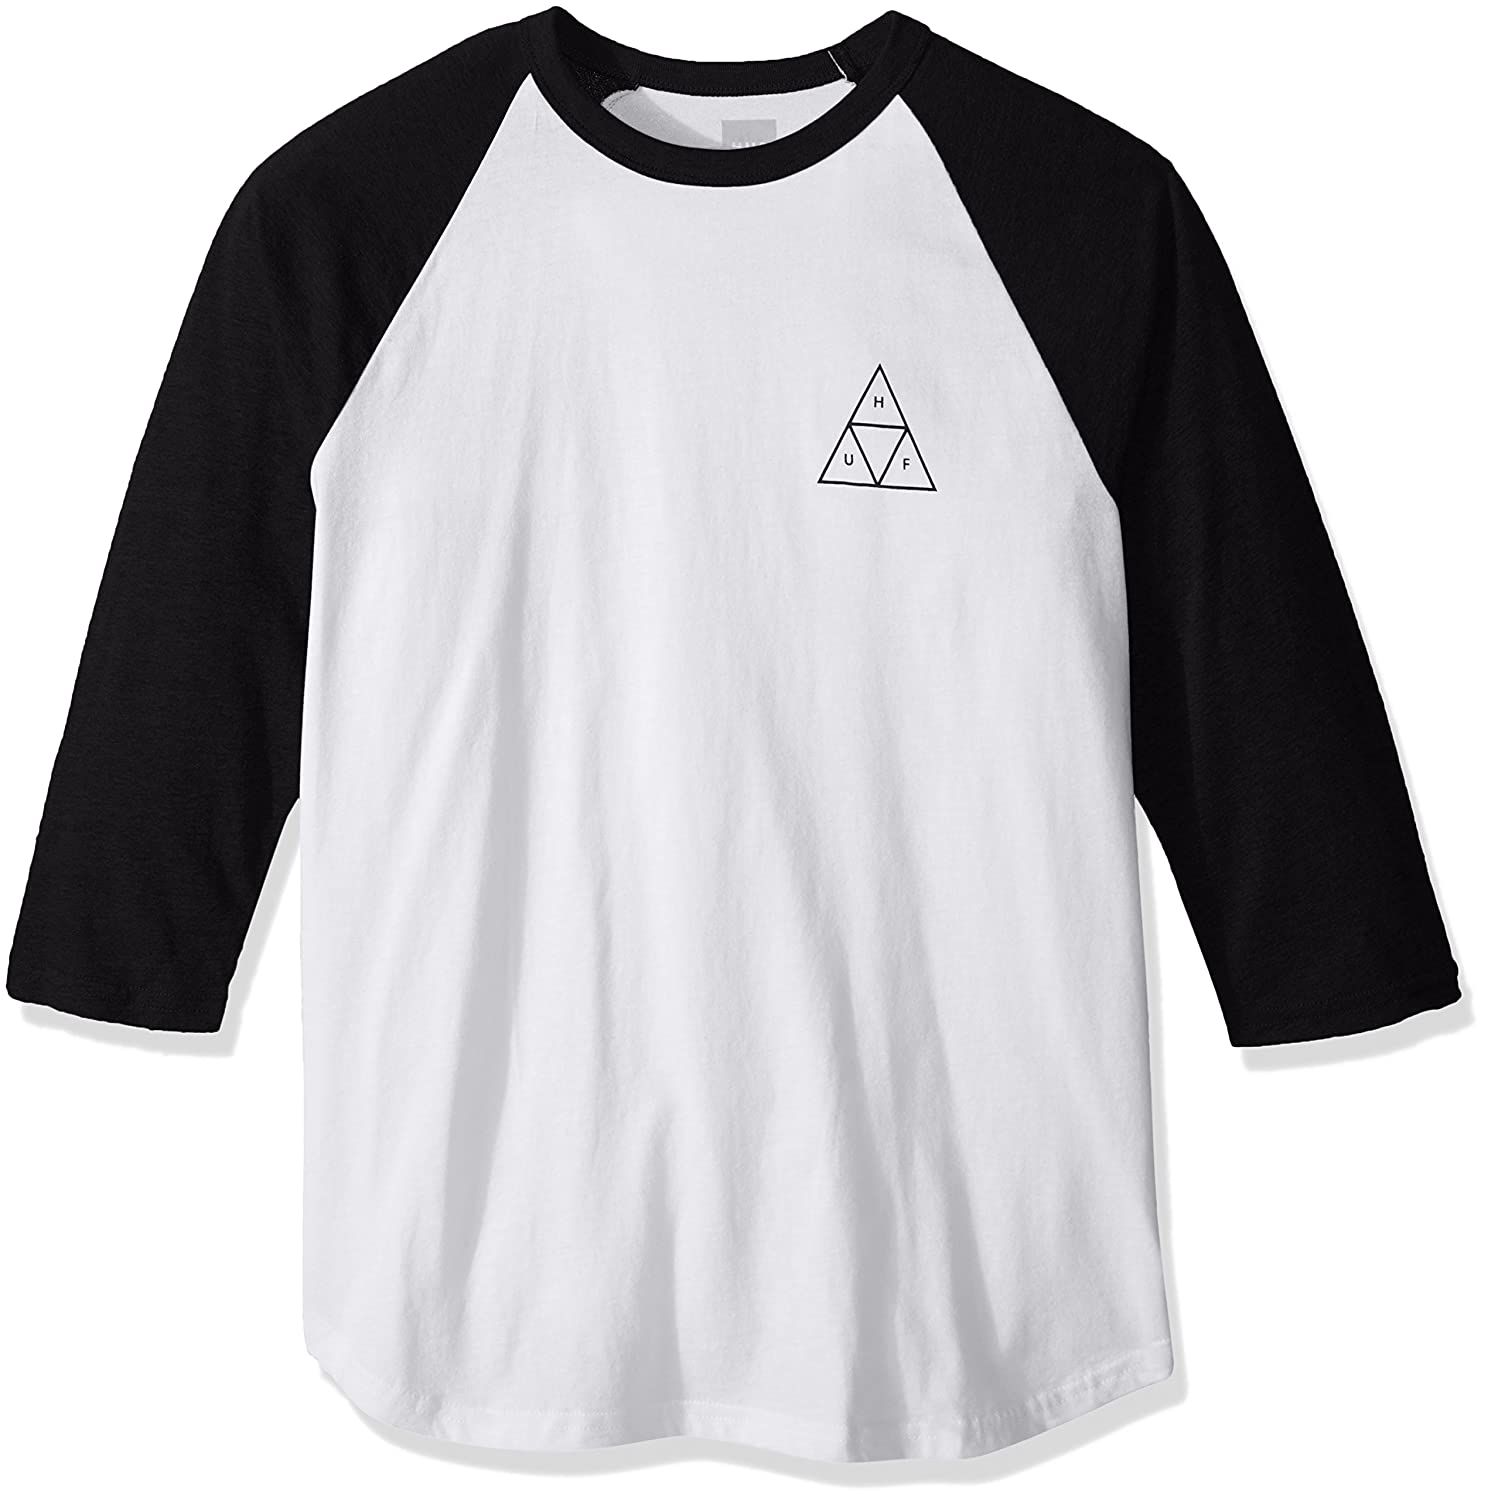 HUF Men's Triple Triangle Raglan Shirt HUF Young Men's Apparel TS00028